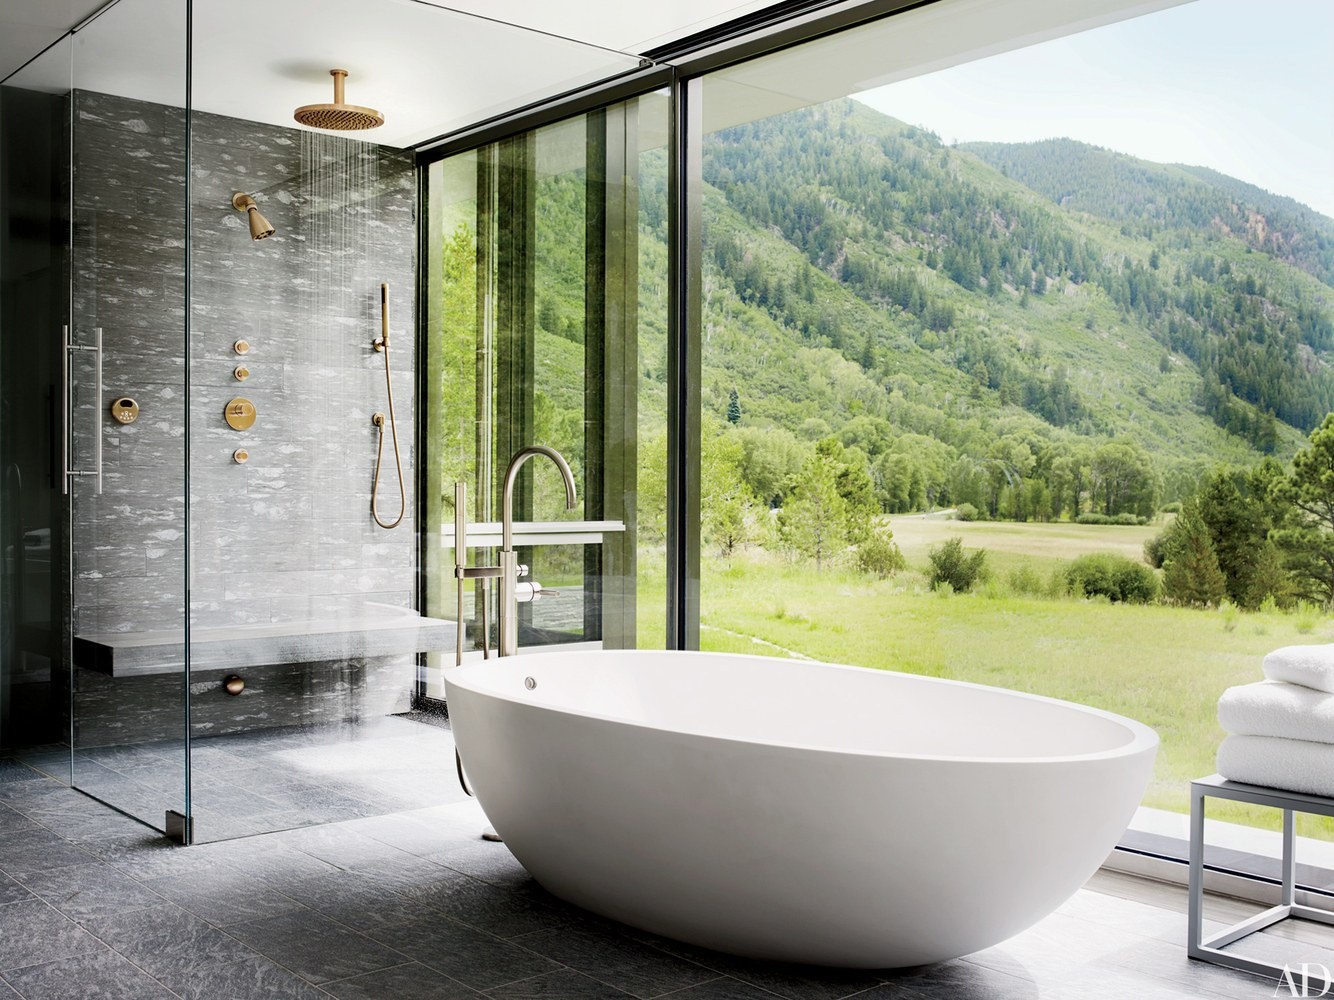 Inspirasi kamar mandi di Aspen, Colorado by architects Bohlin Cywinski Jackson and Shelton, Mindel & Assoc. (sumber: architecturaldigest.com)